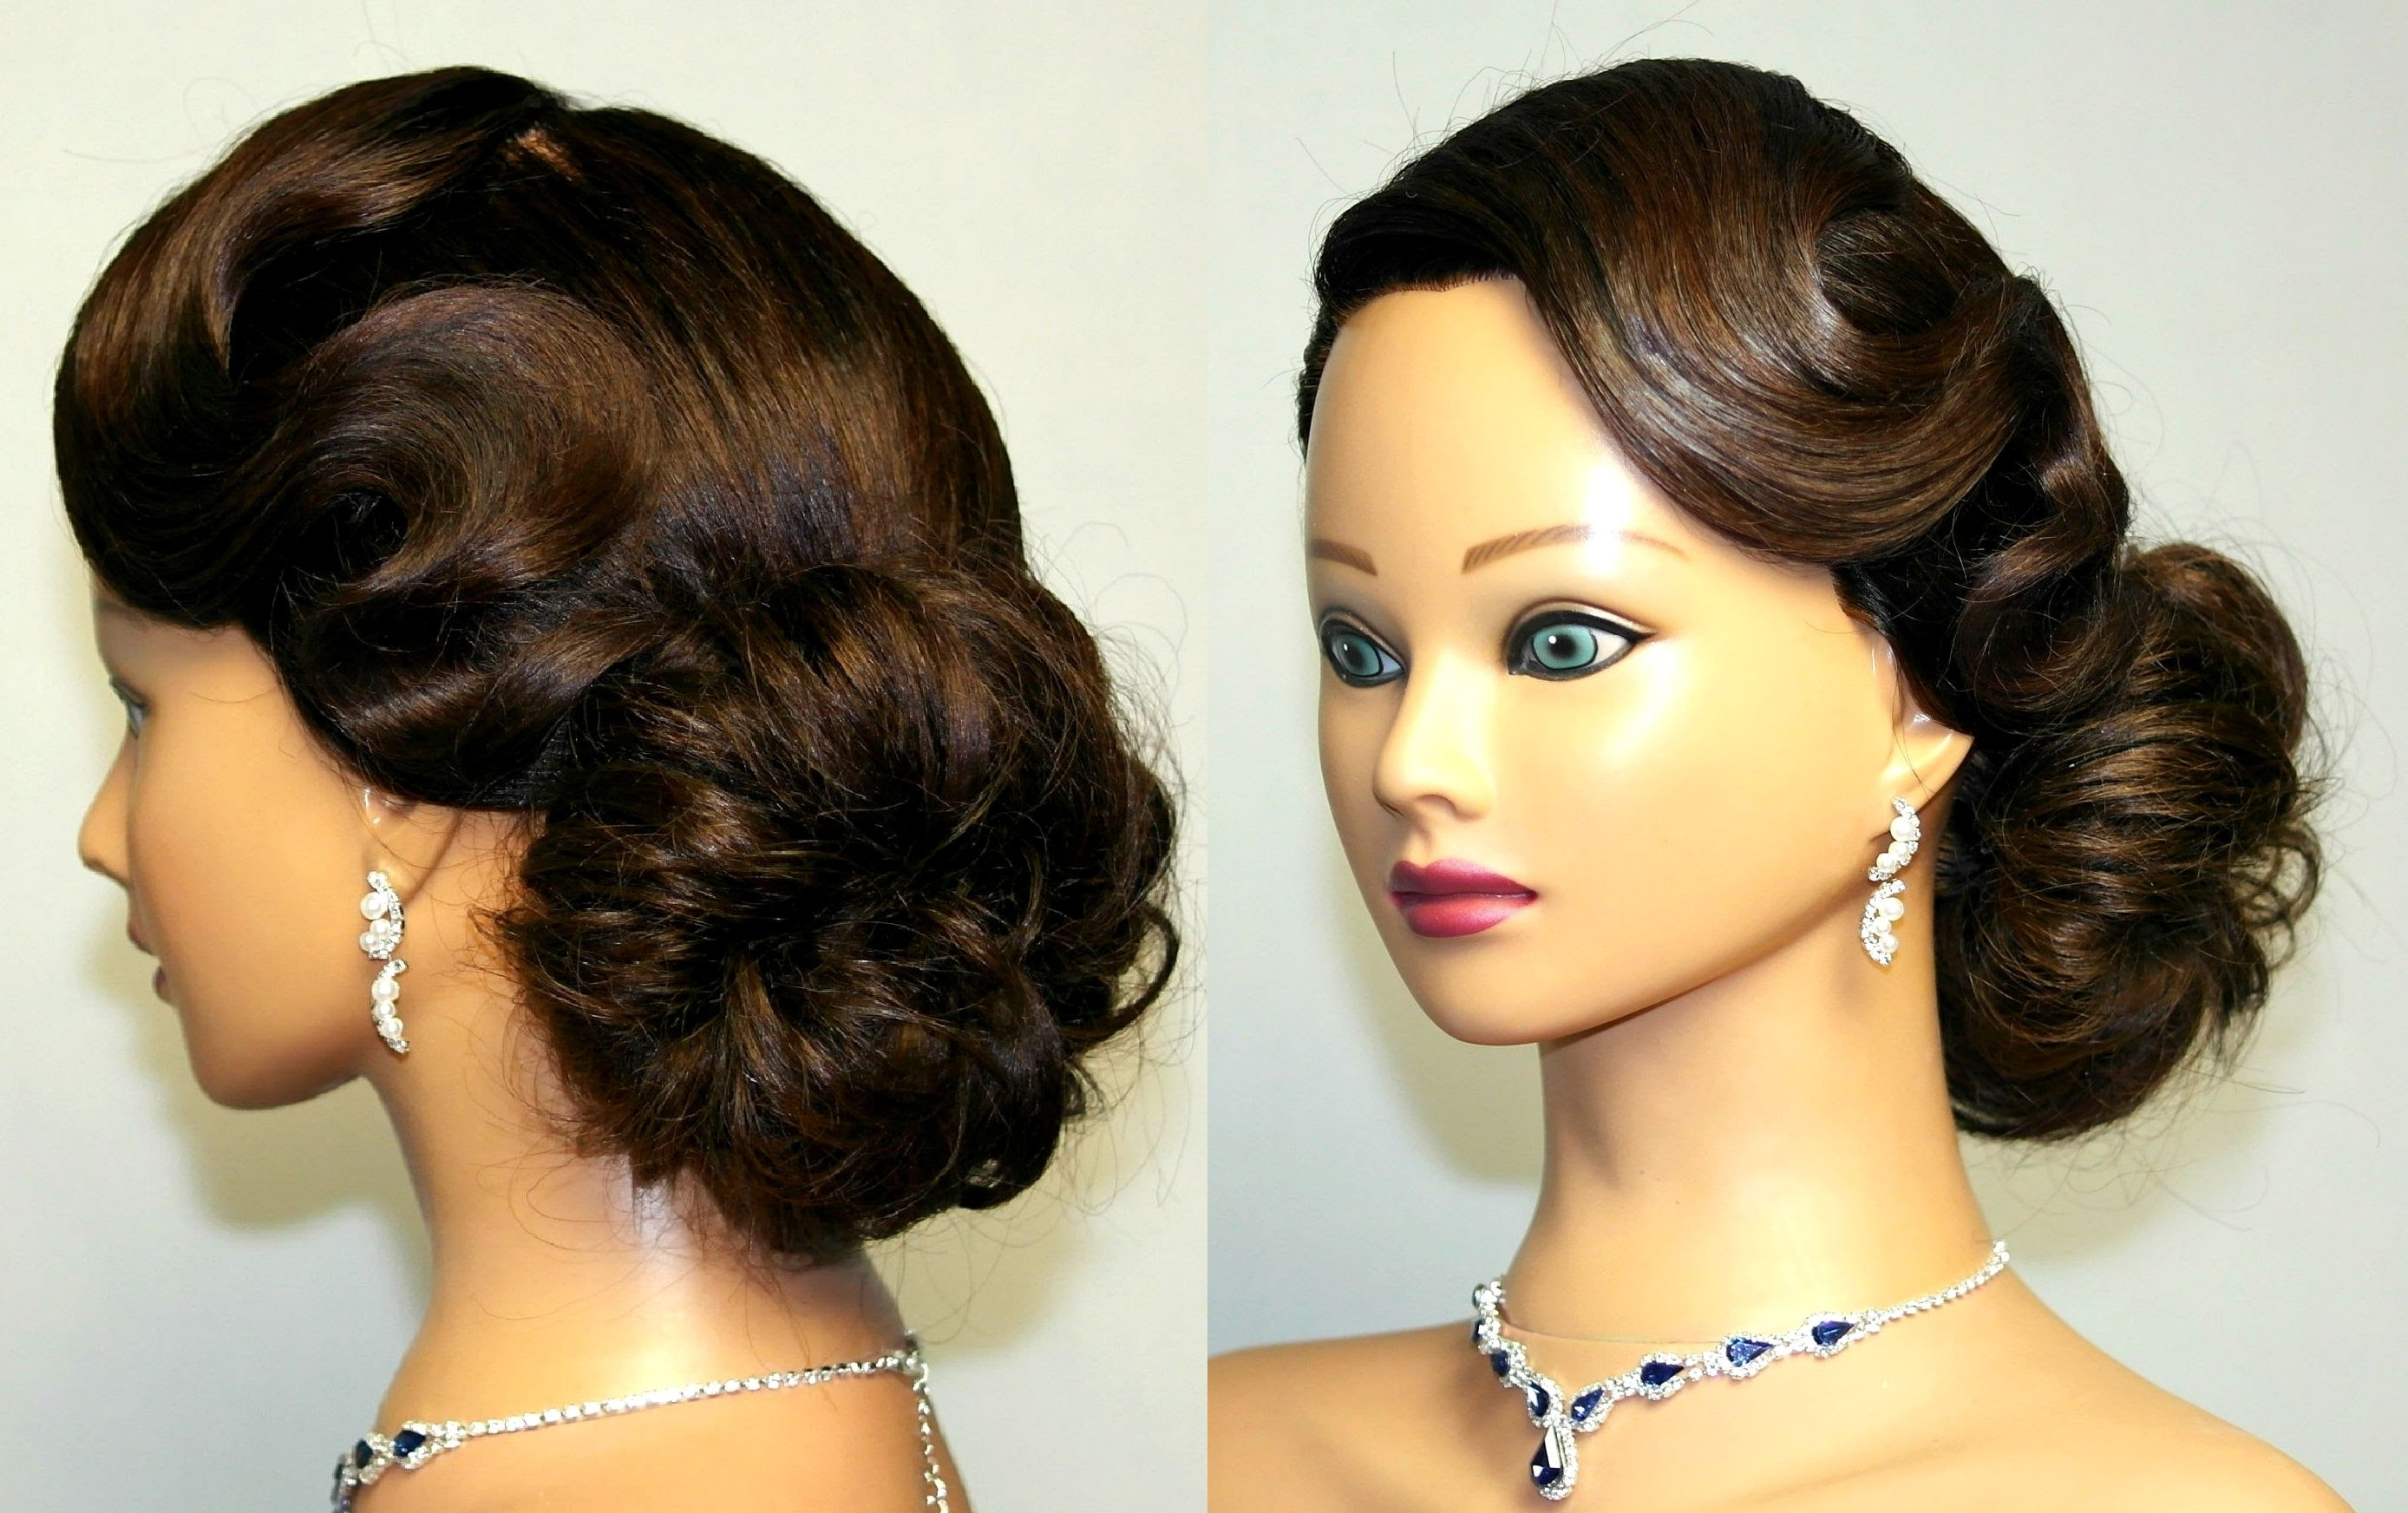 Unique Vintage Ponytail Ideas On Pinterest Retro Blackstyles For With Regard To Most Recent Braided Vintage Hairstyles (View 12 of 15)